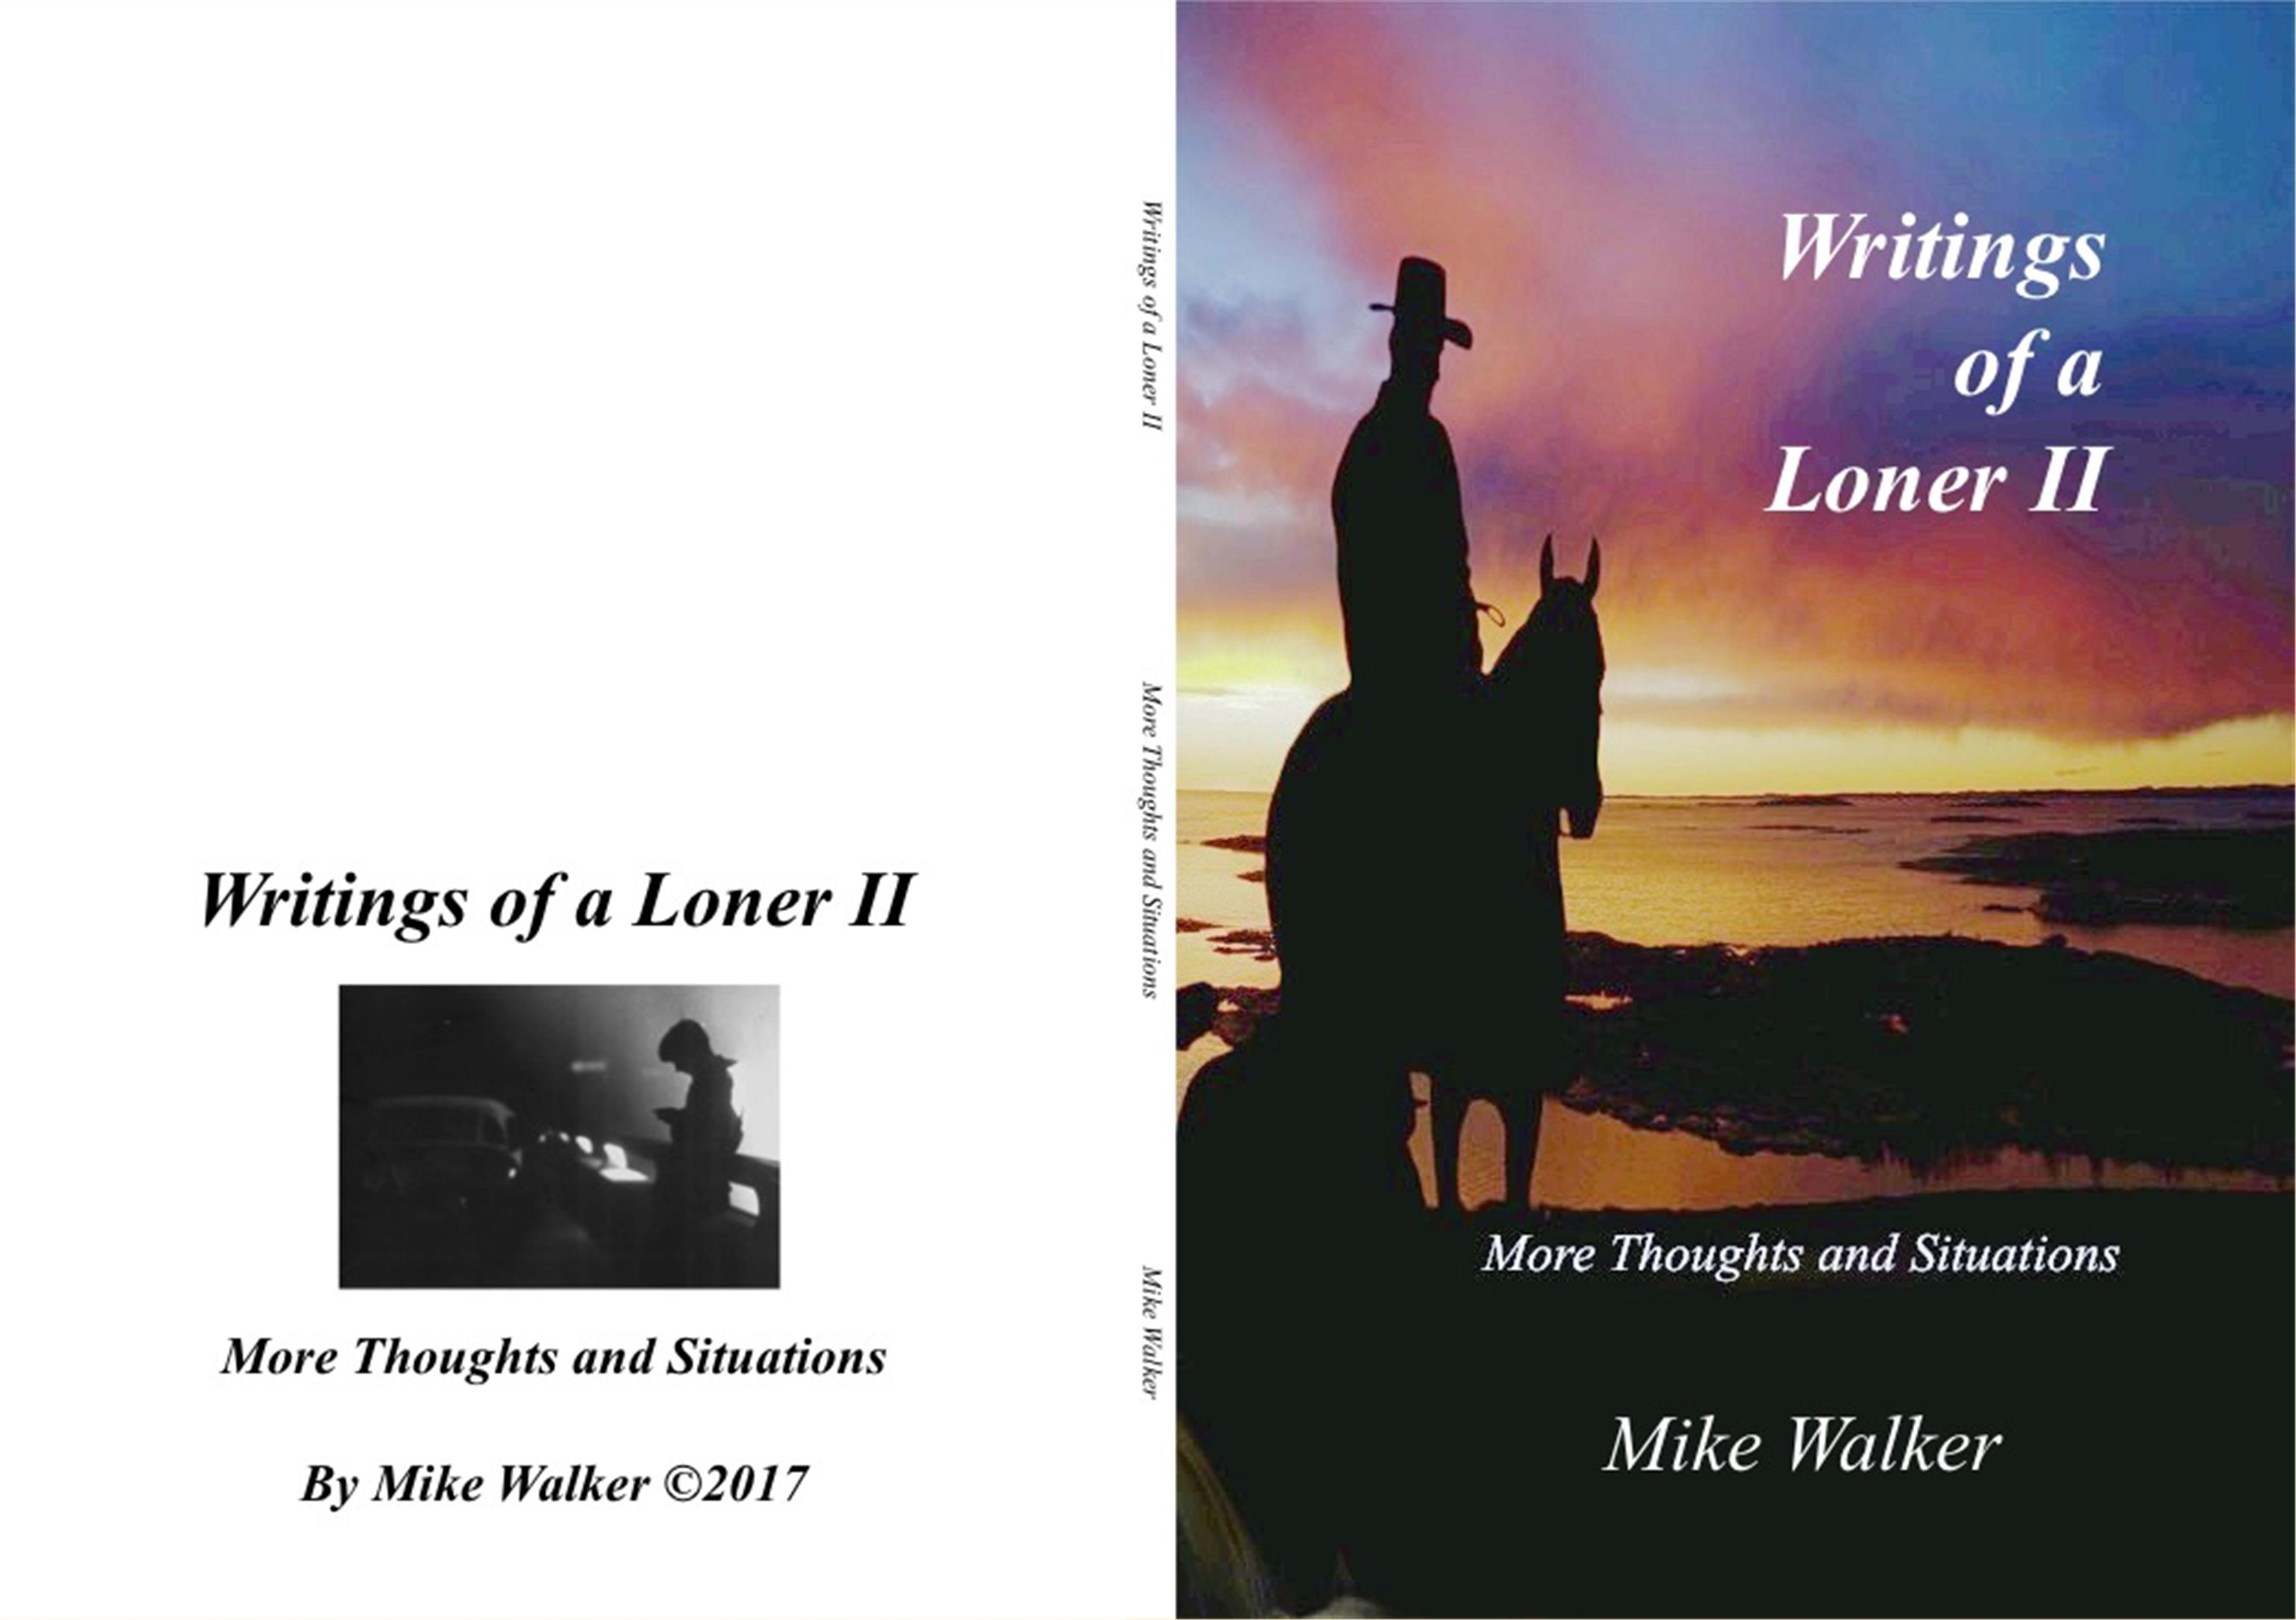 Writings of a Loner II cover image